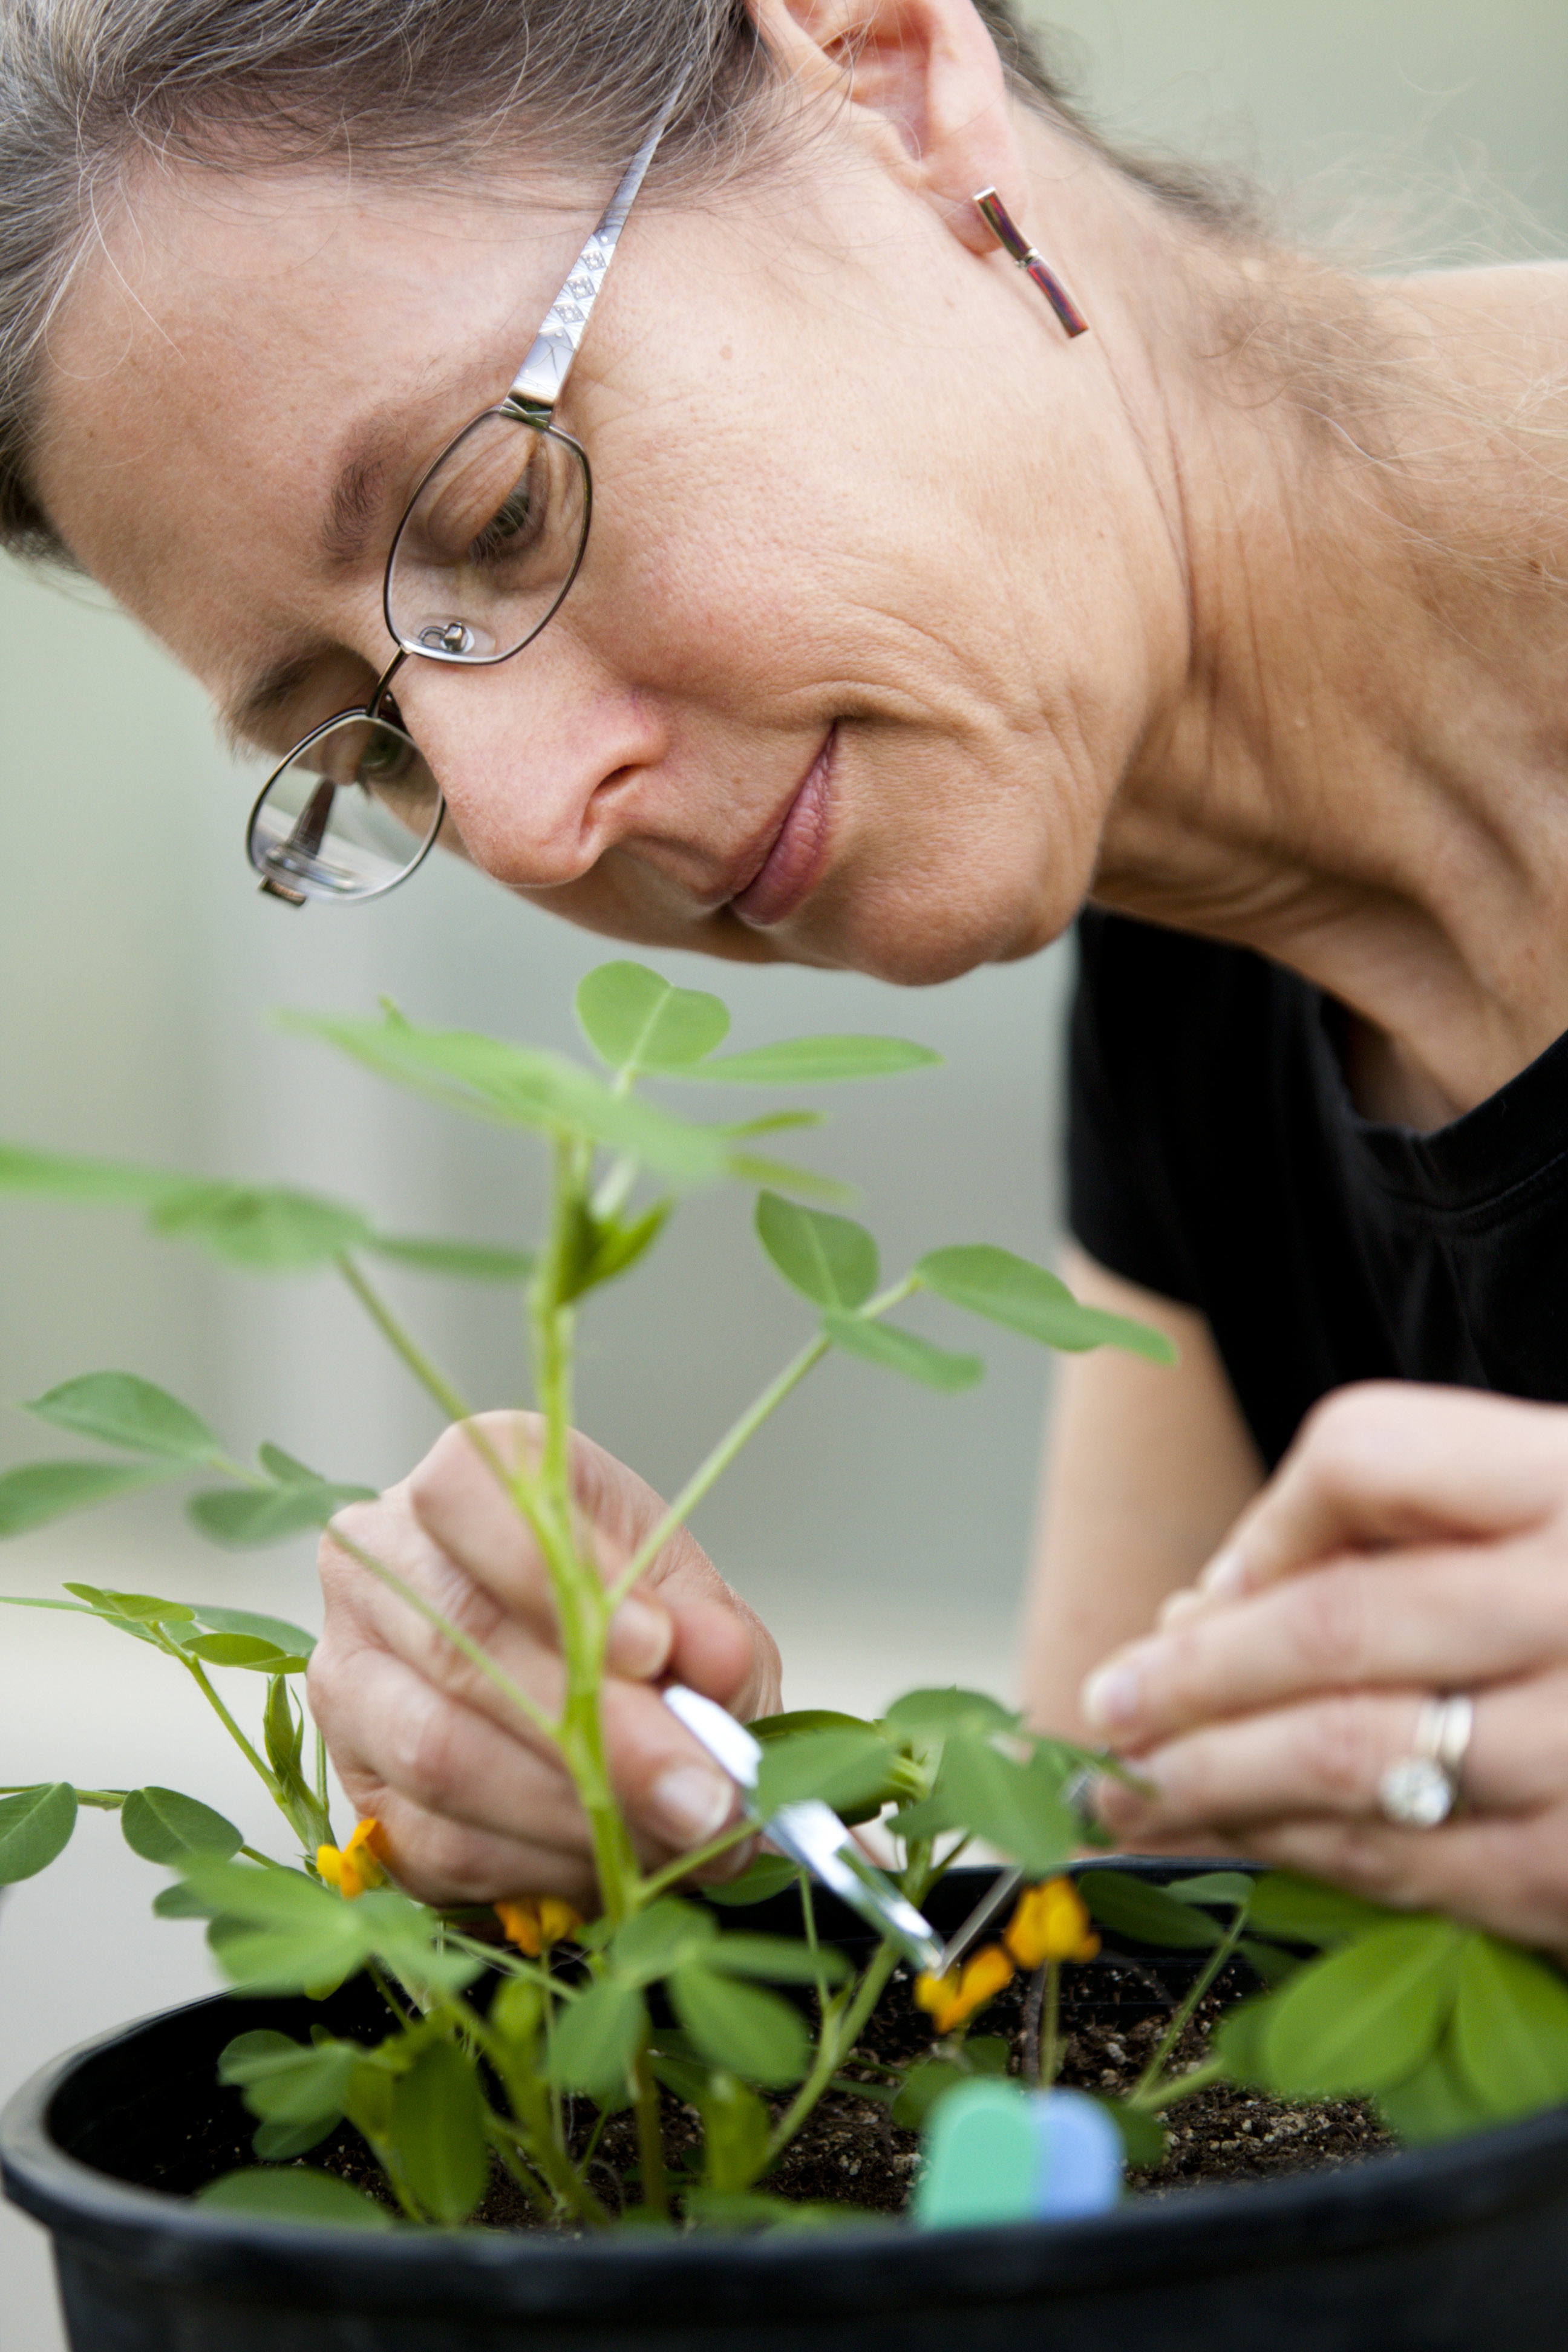 UGA peanut geneticist Peggy Ozias-Akins, director of the UGA Institute of Plant Breeding, Genetics and Genomics, examines a peanut blossom. Ozias-Akin's lab on the UGA Tifton Campus focuses on female reproduction and gene transfer in plants.